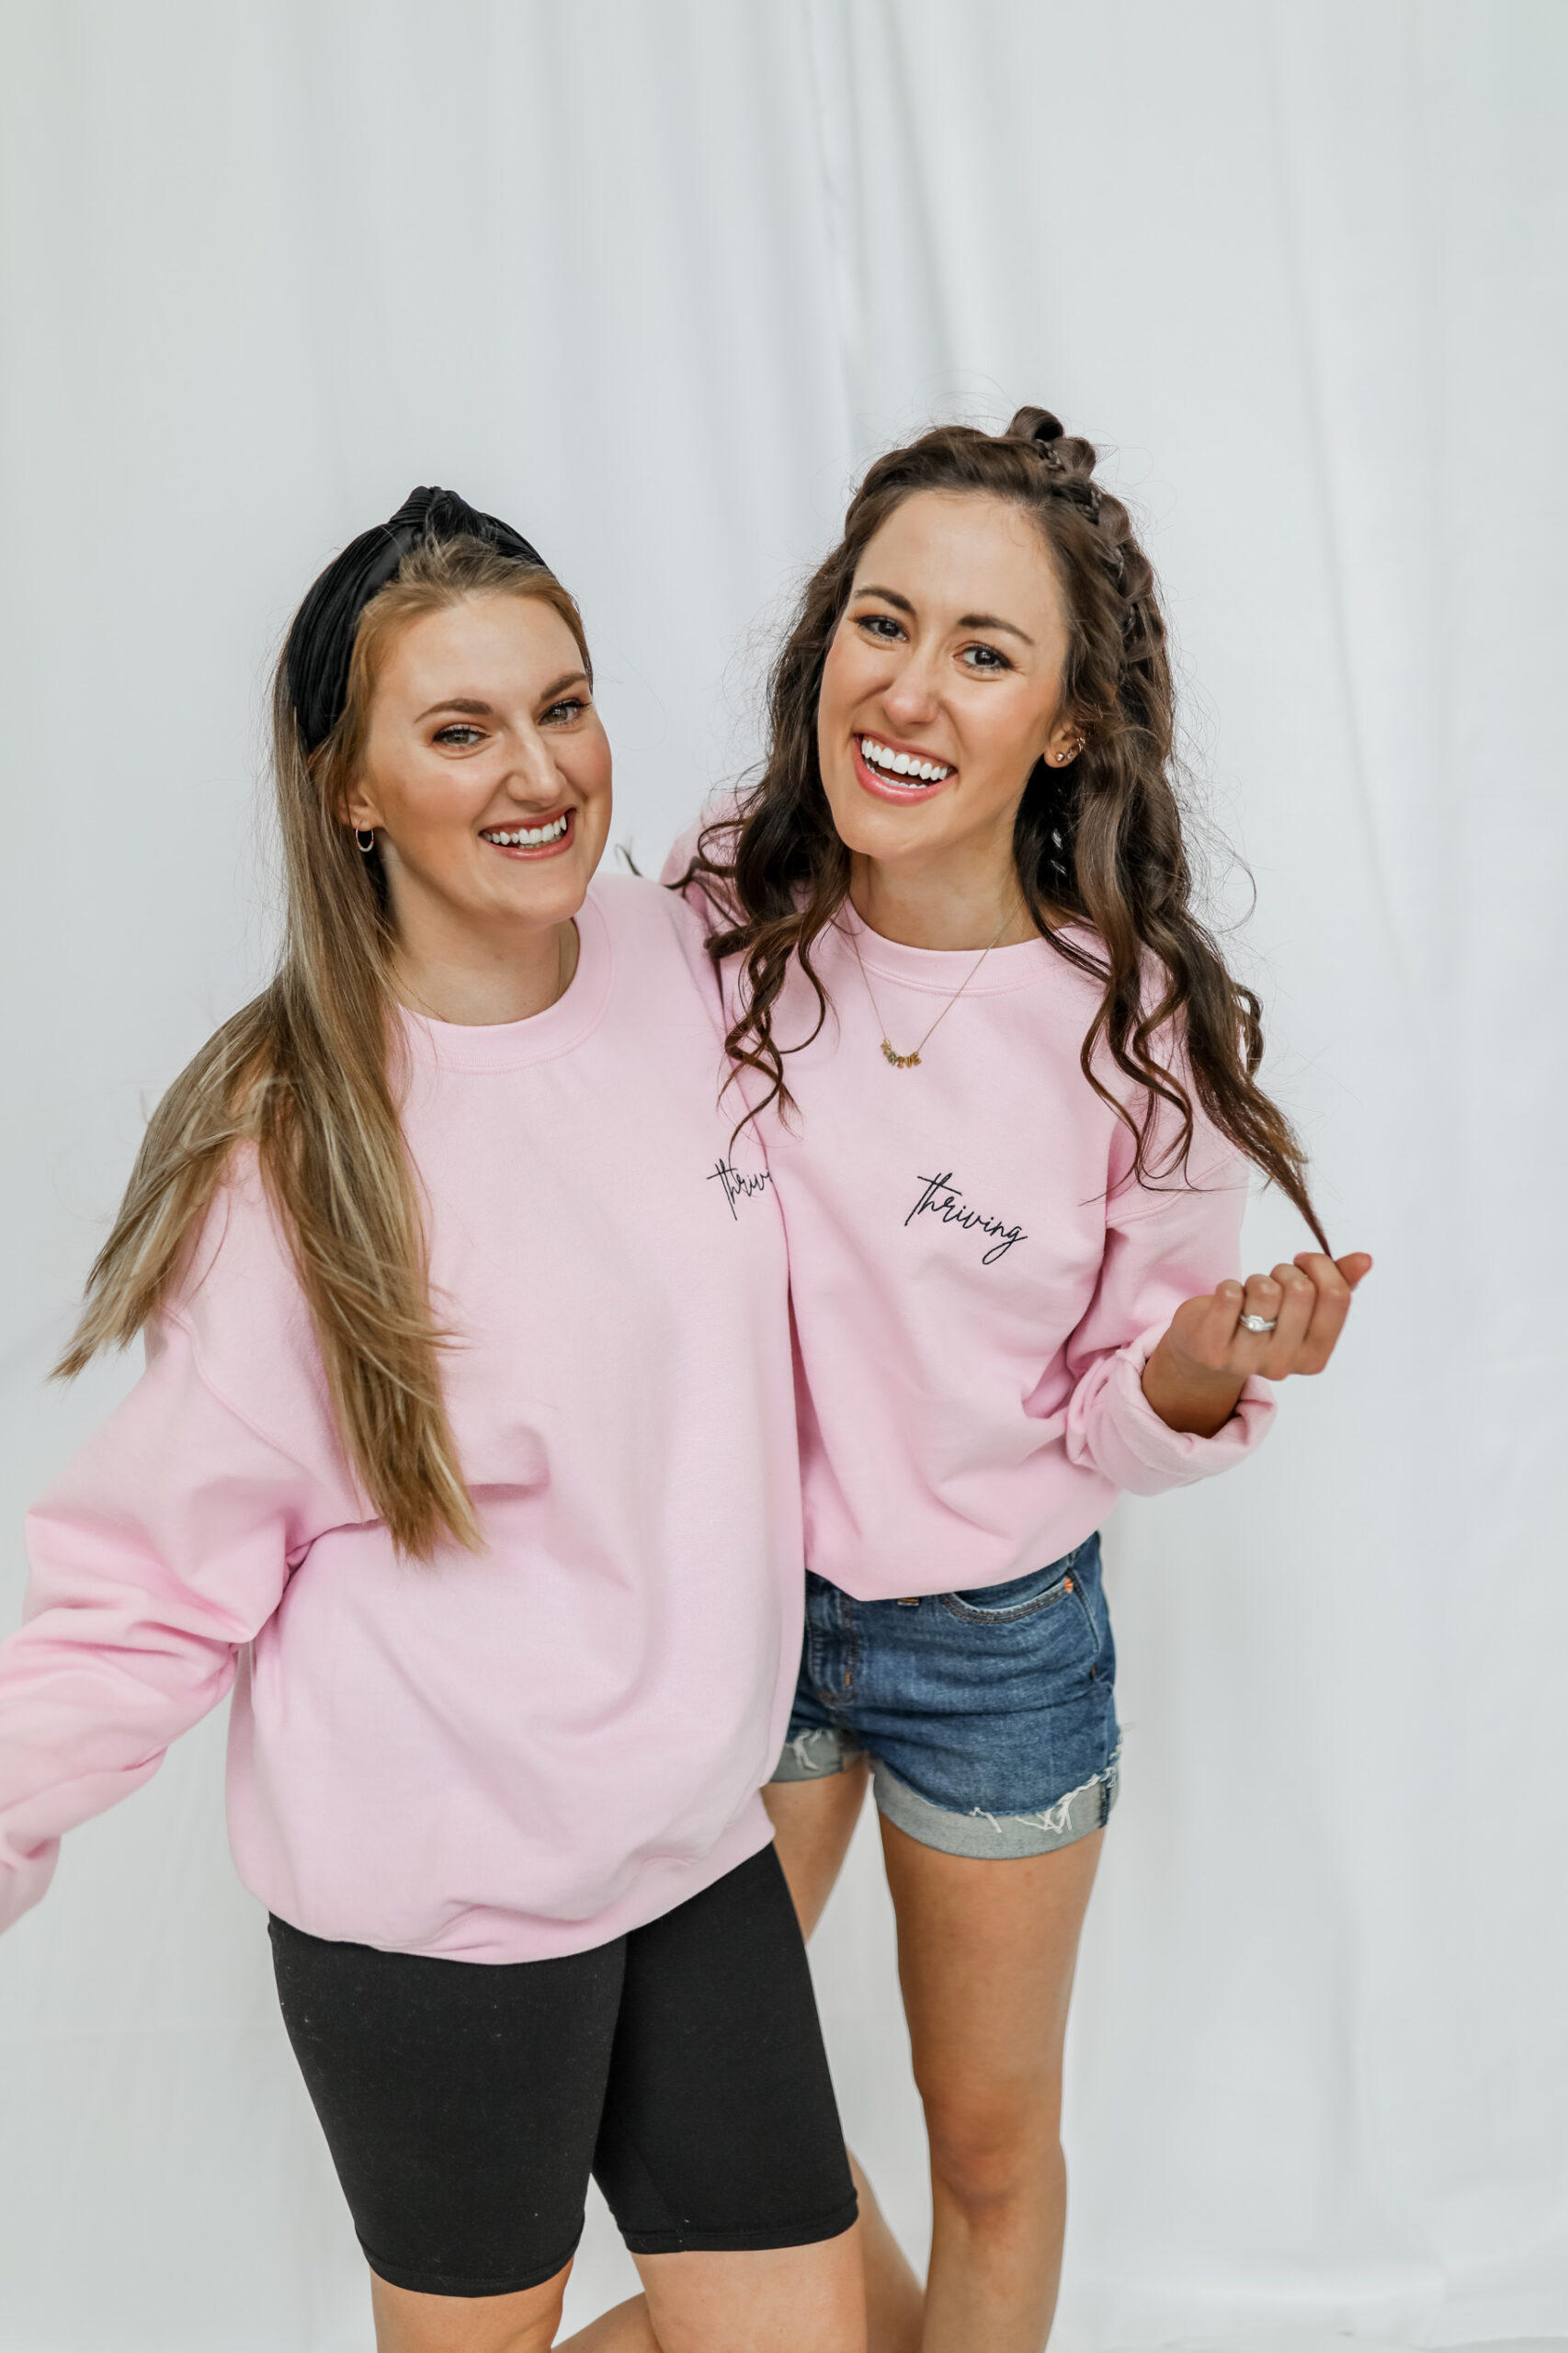 the THRIVING Sweatshirt - the Thriving Collection on Coming Up Roses